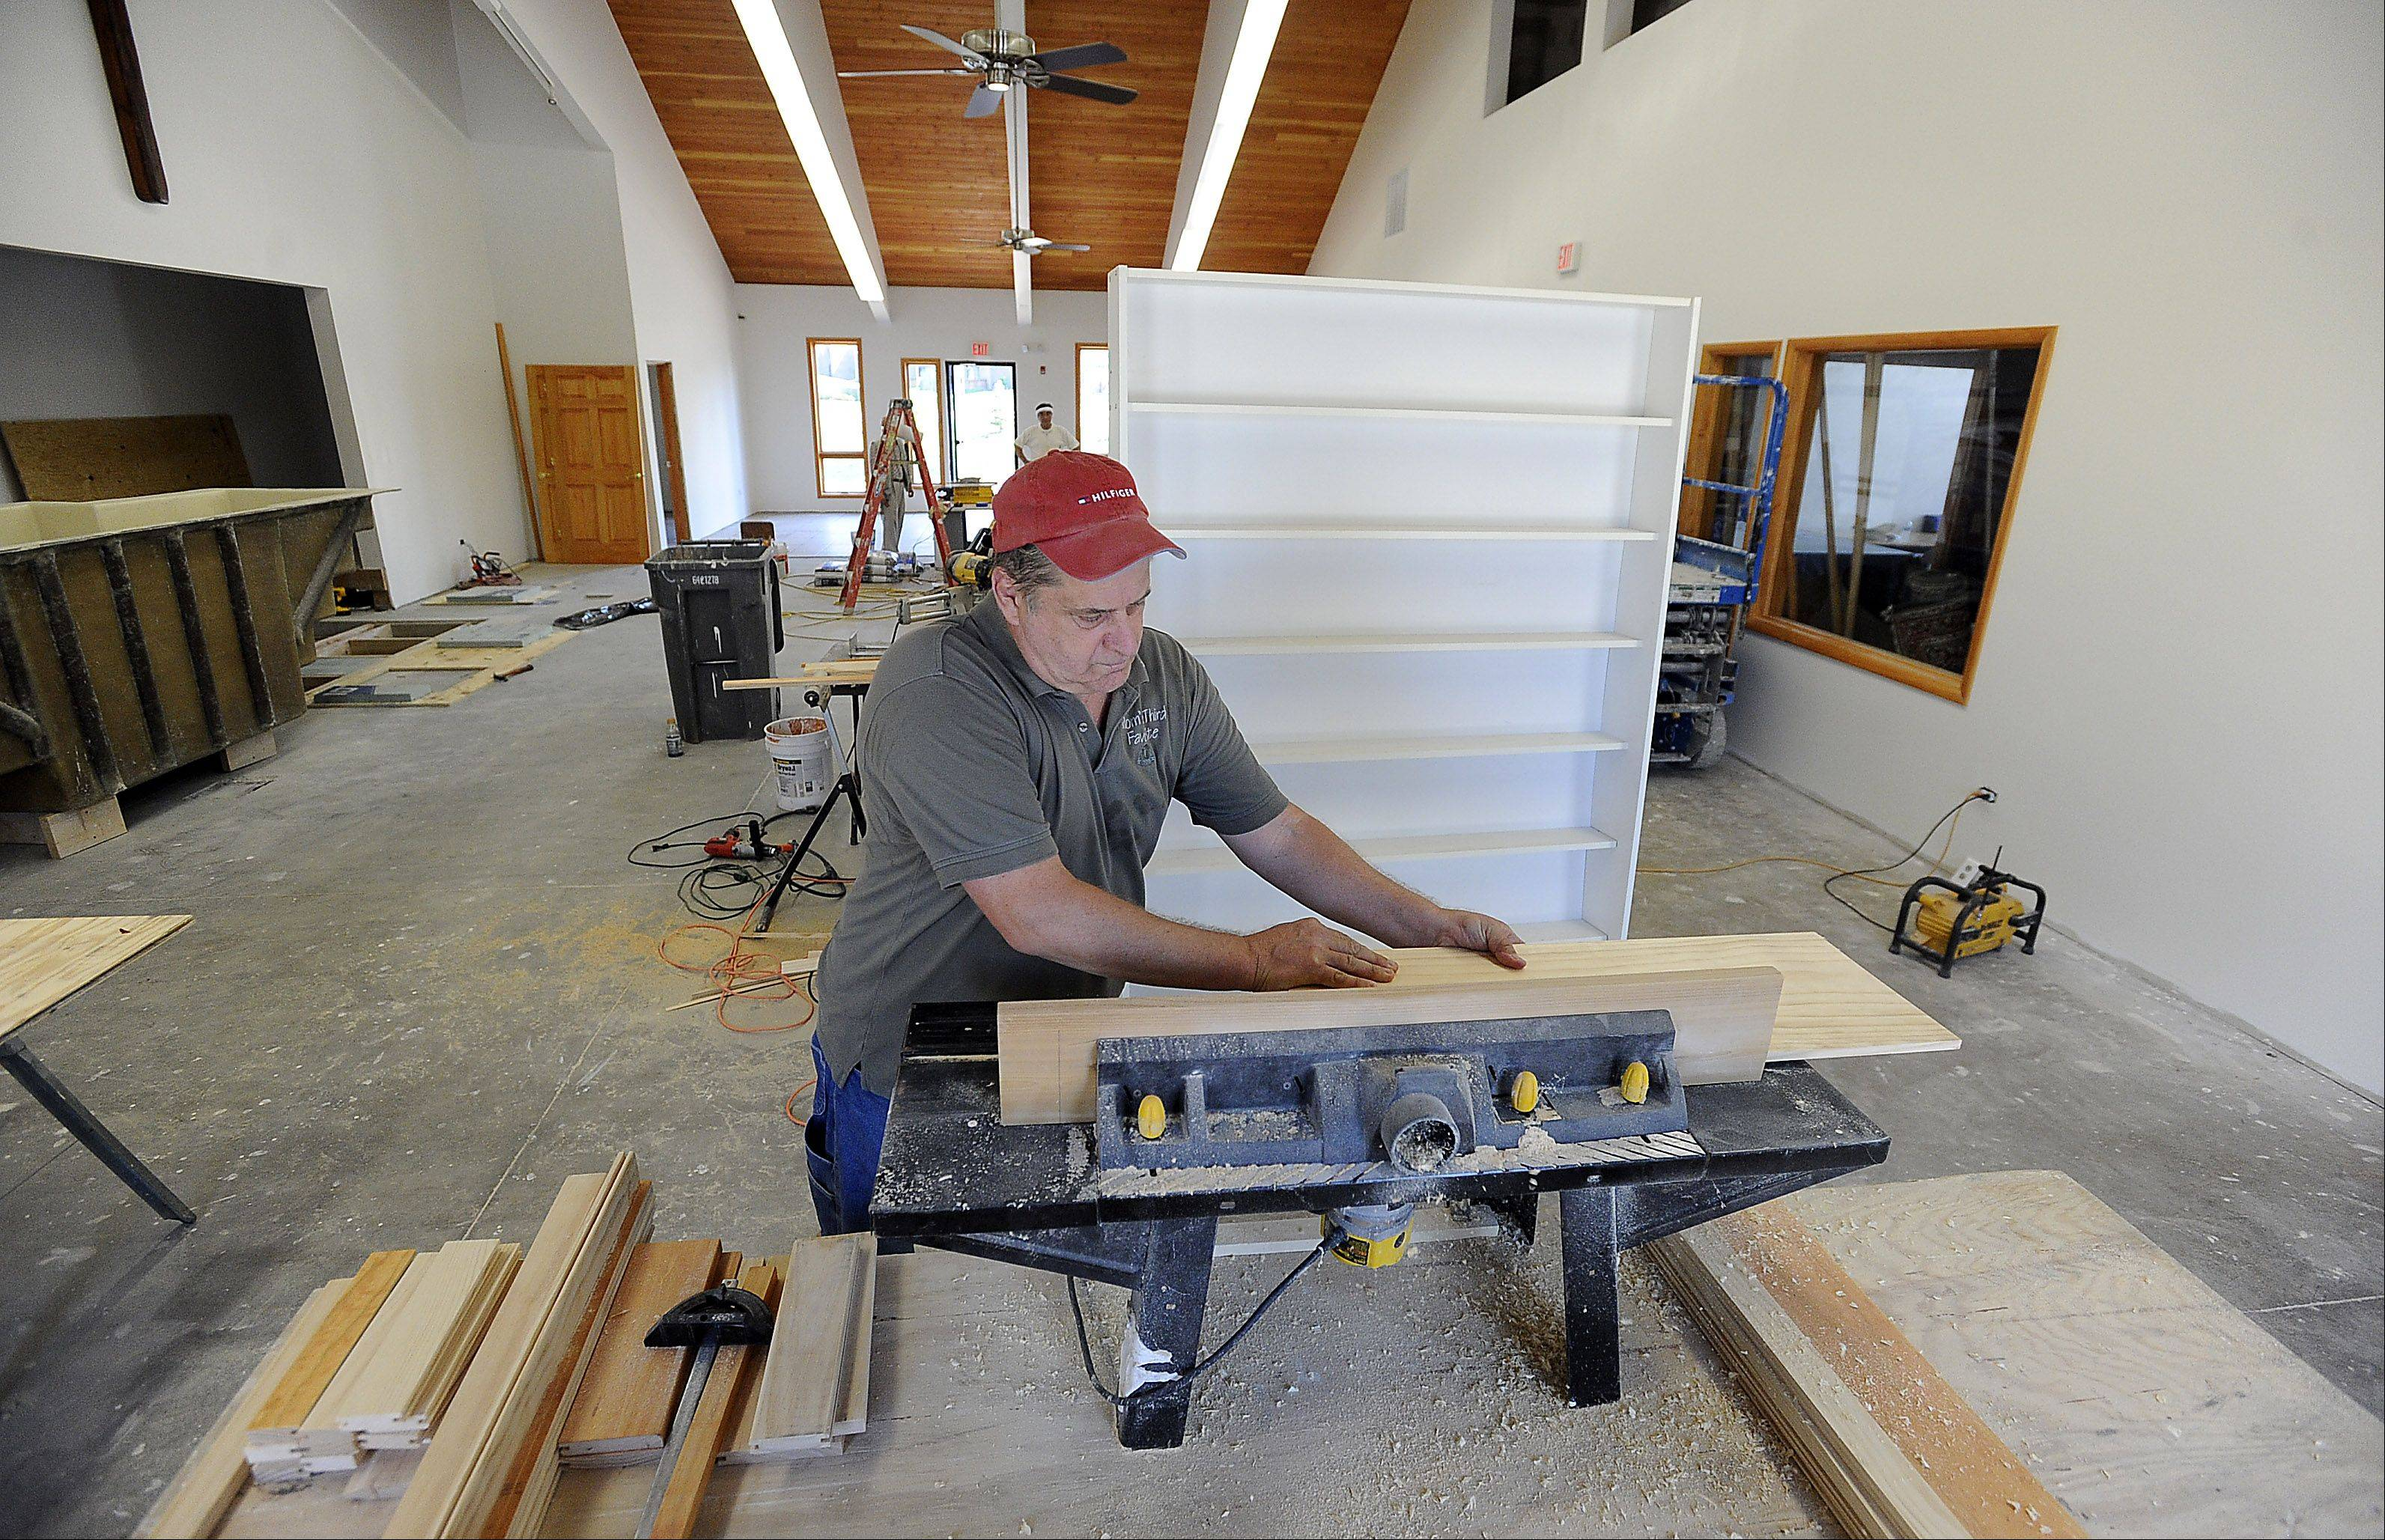 Rich Meyer of Mount Prospect works on shutters for the Chicago Japanese Mission Church in Arlington Heights. He's one of many volunteers who are bringing the church closer to finally opening late this year after a three-year effort to build it.